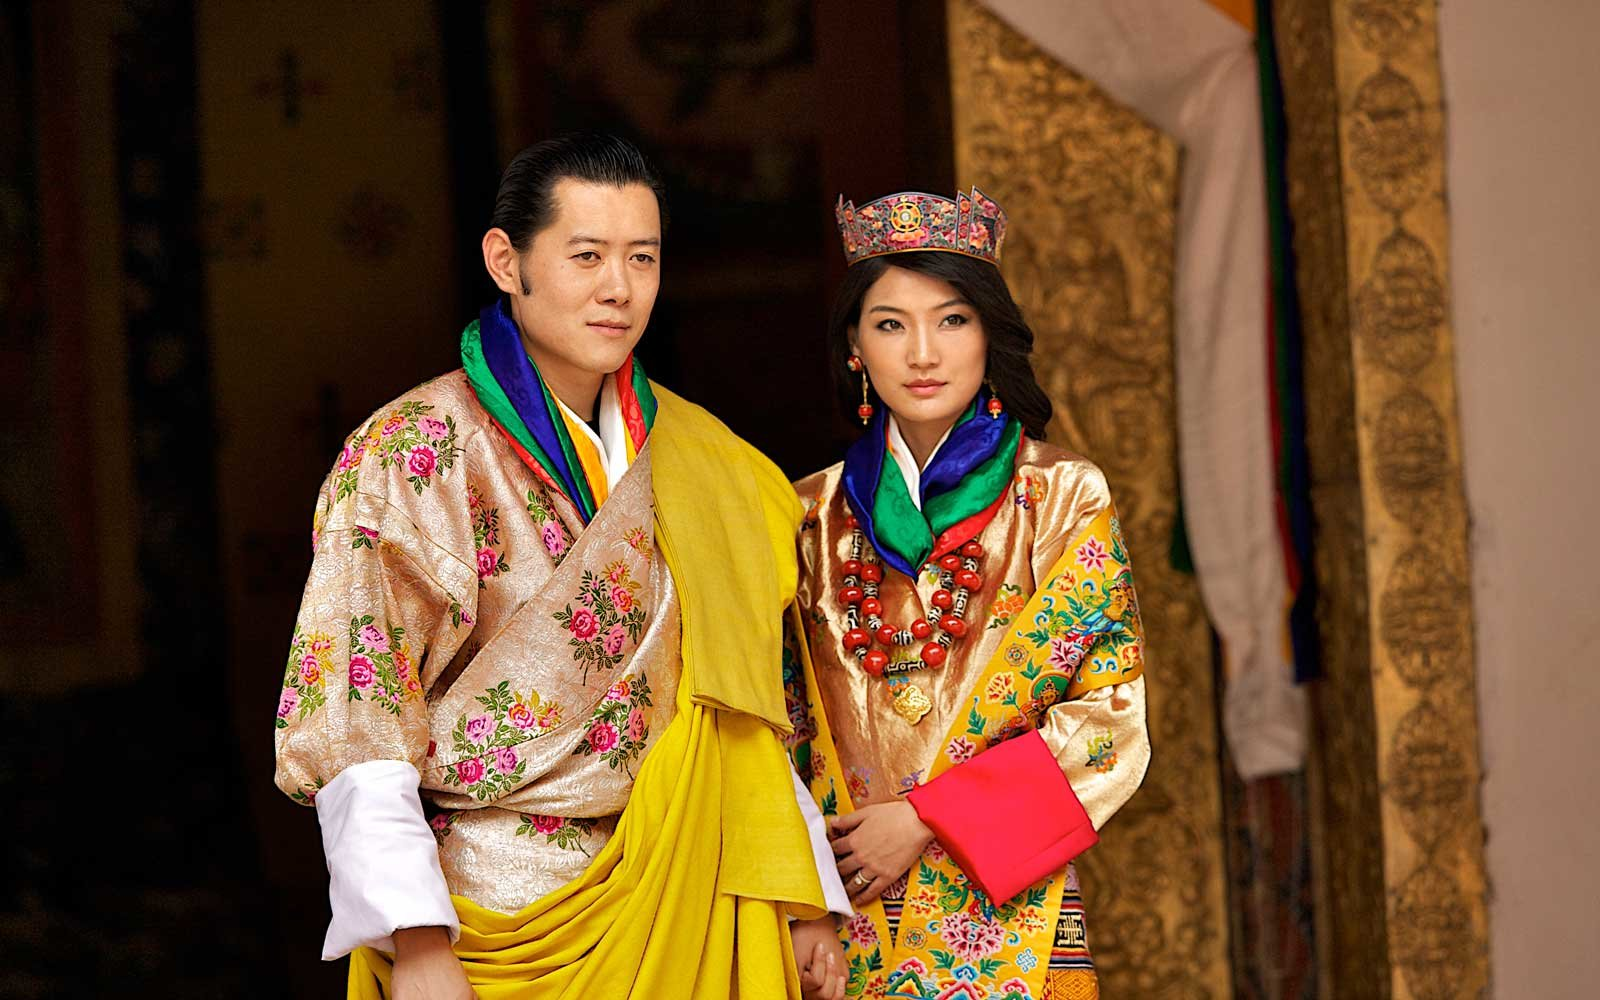 Bhutan Celebrates As The King Marries